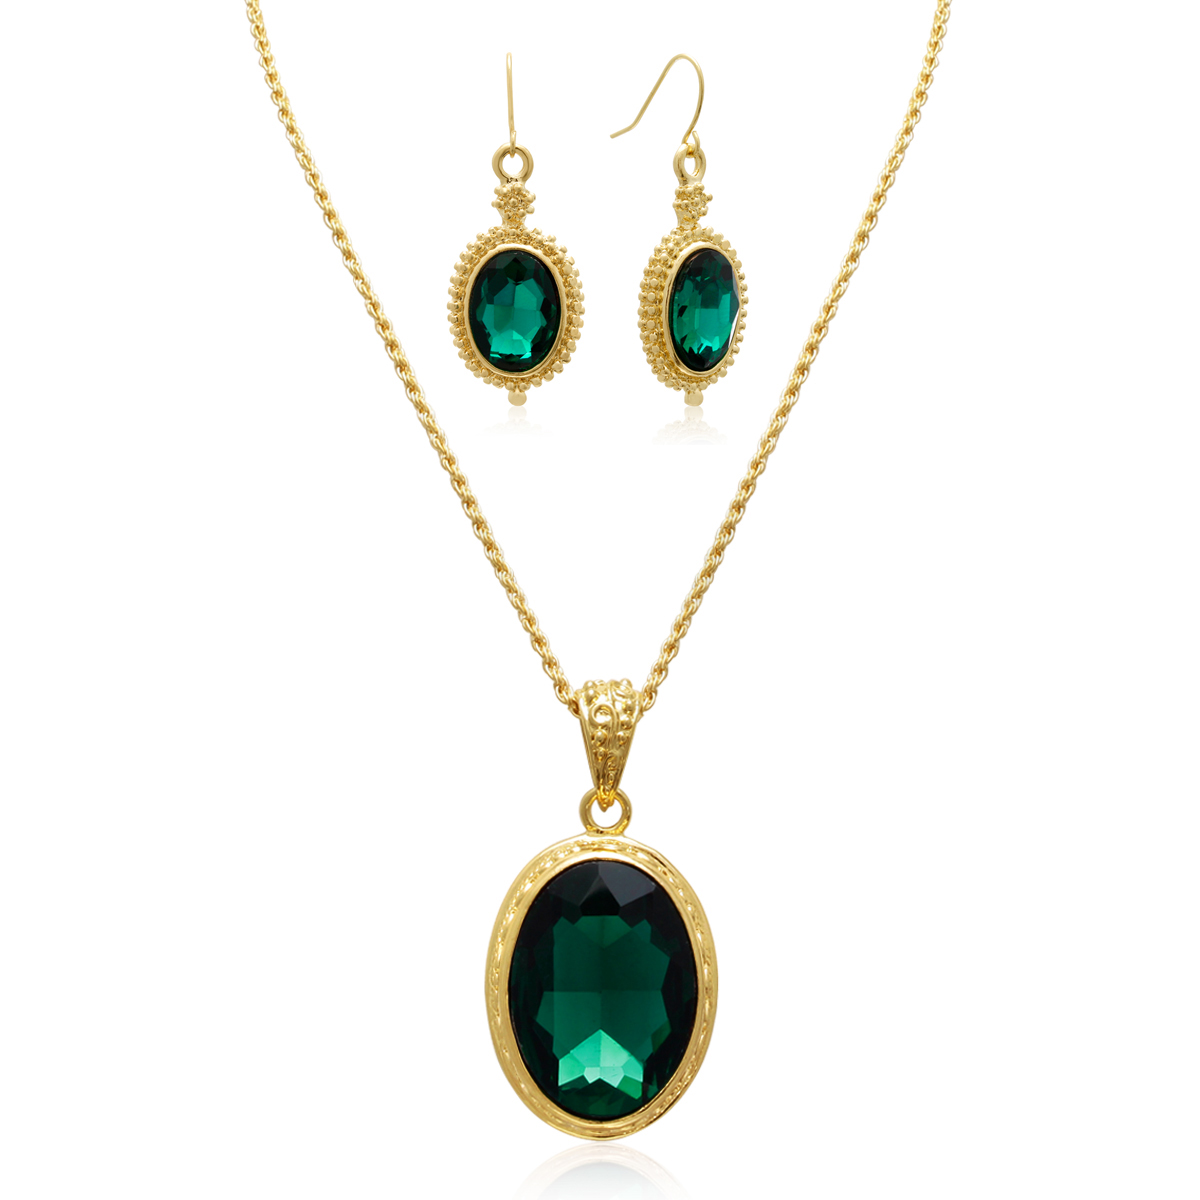 a86ab0b85 Regal 20 Carat Oval Shape Crystal Emerald Necklace With Free Matching  Earrings